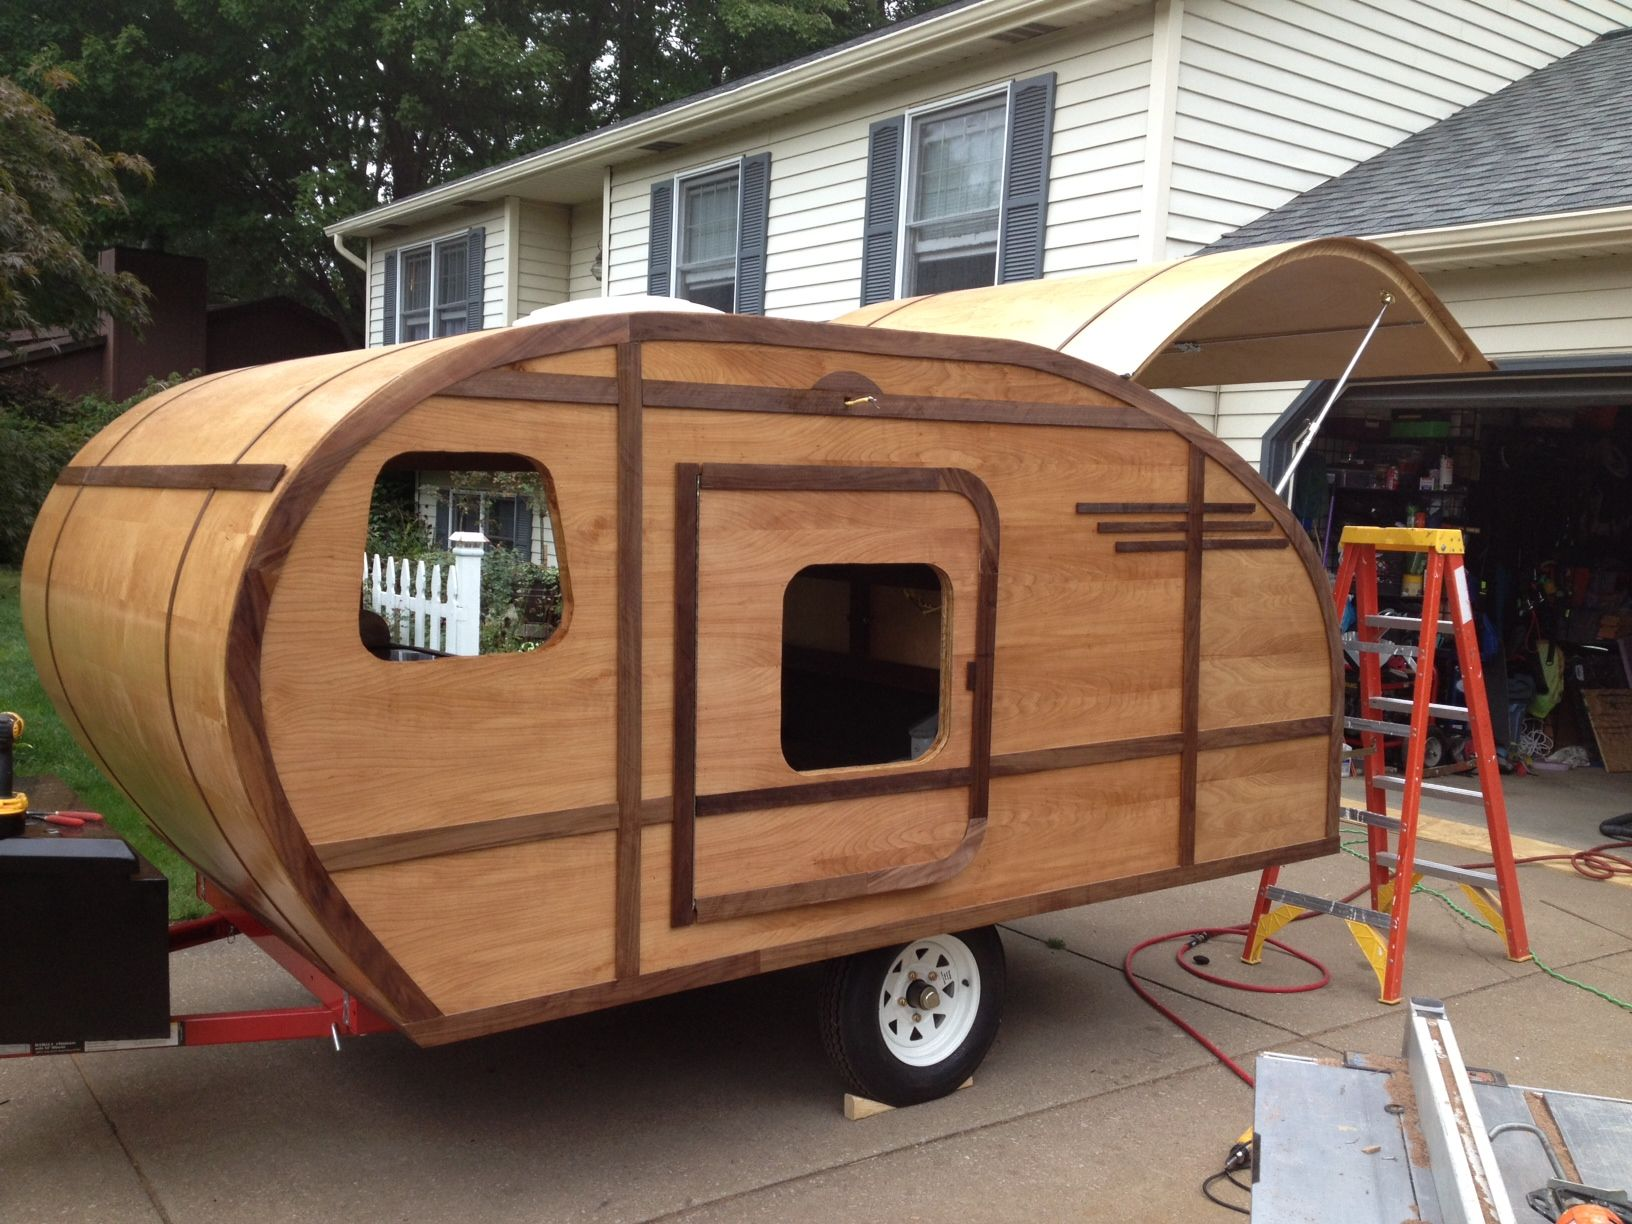 Added The Doors And The Rest If The Exterior Trim Before The Rains Hit I Should 39 Ve Built An Ark